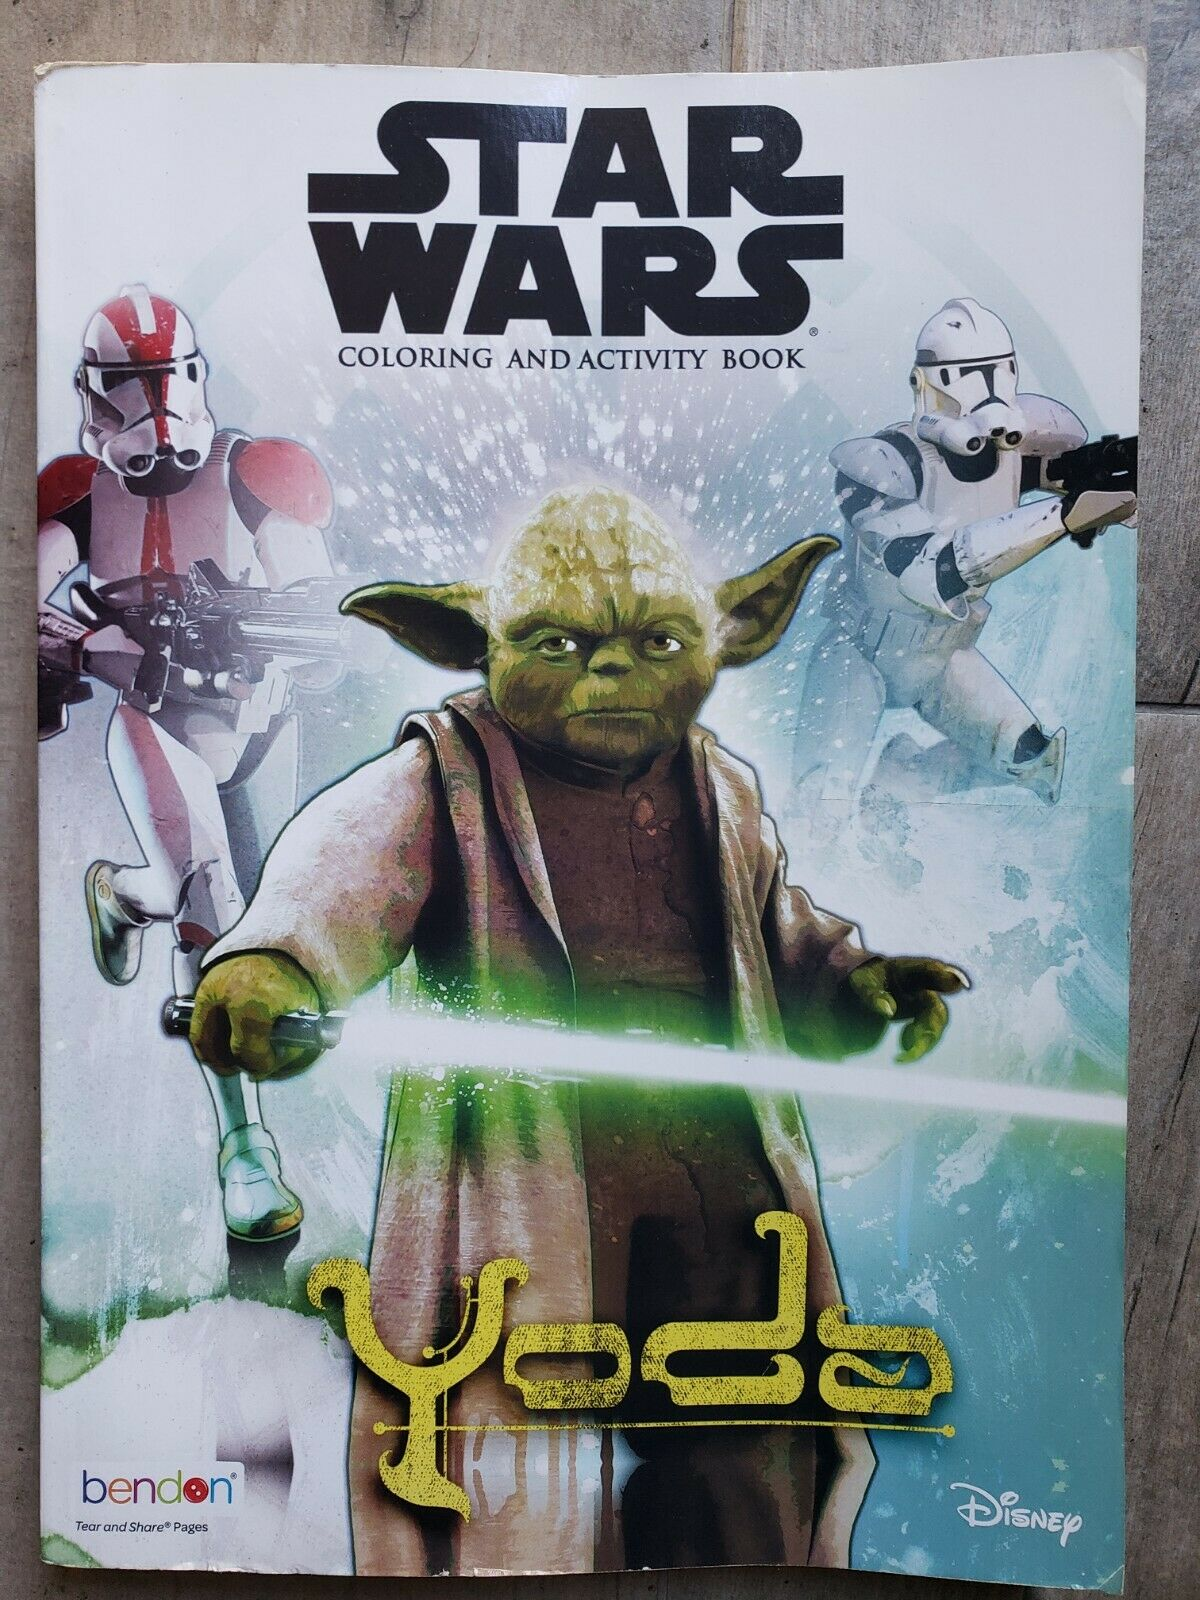 Star Wars: Coloring and Activity Book - Yoda